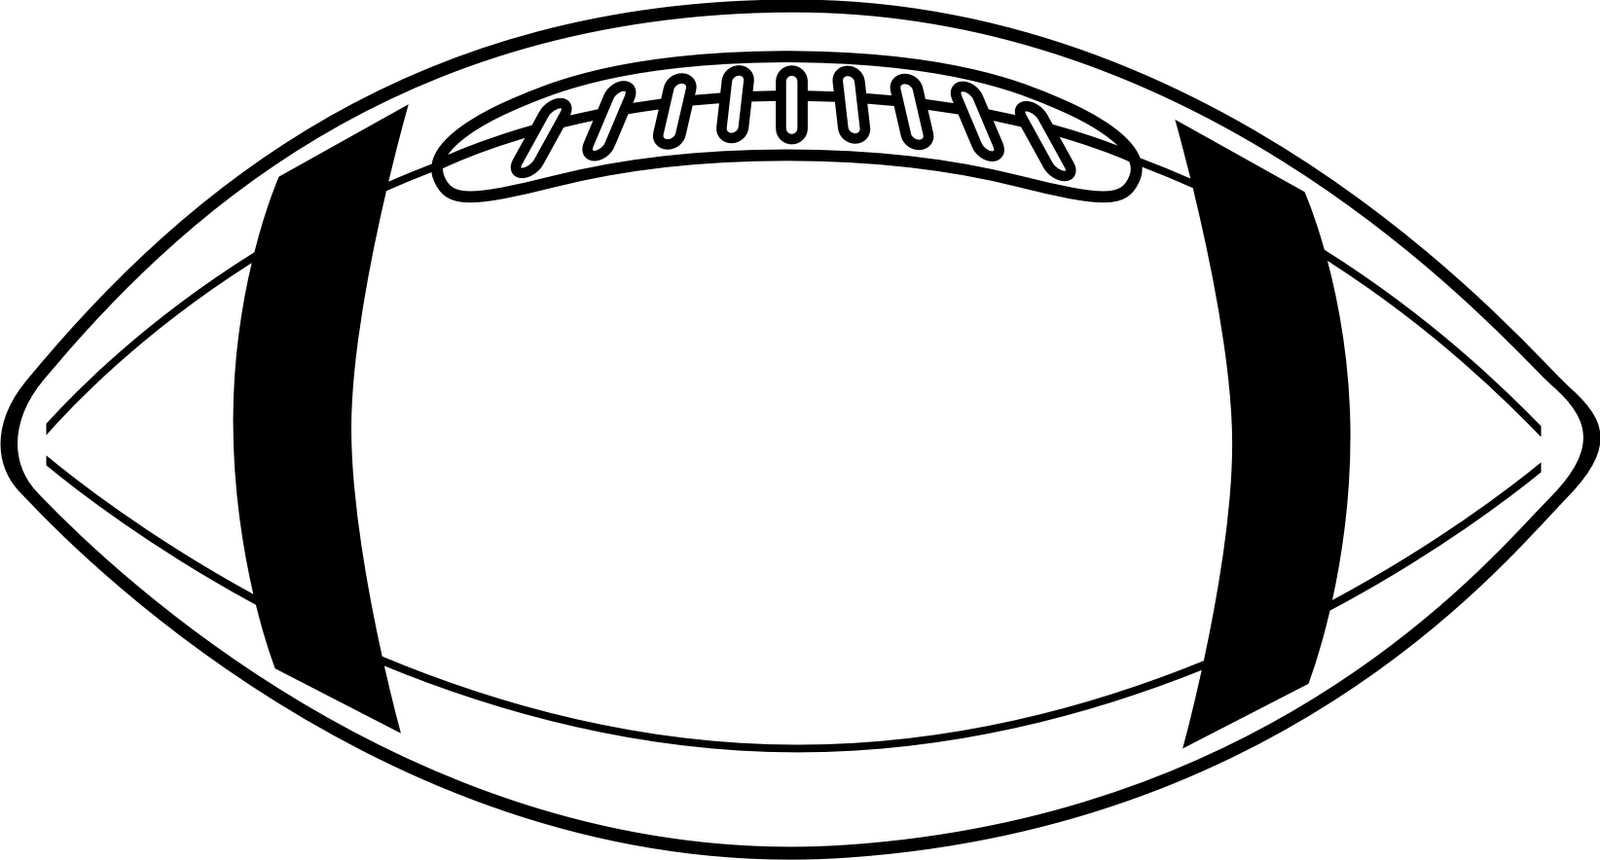 Football Laces Clipart Black And White.